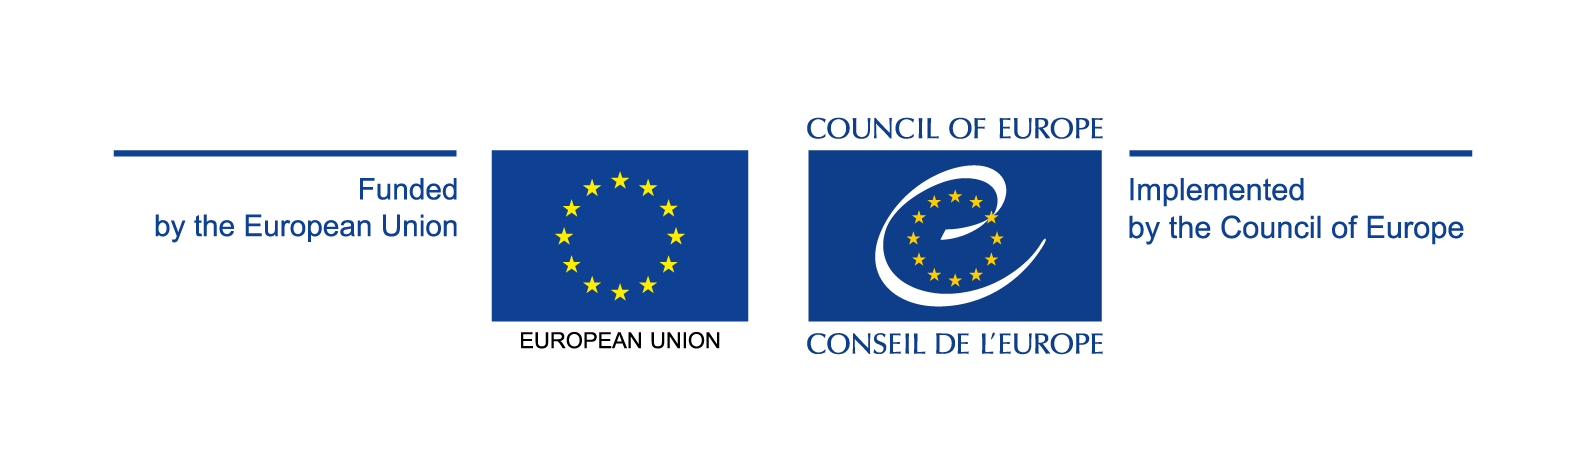 European Union and Council of Europe logo